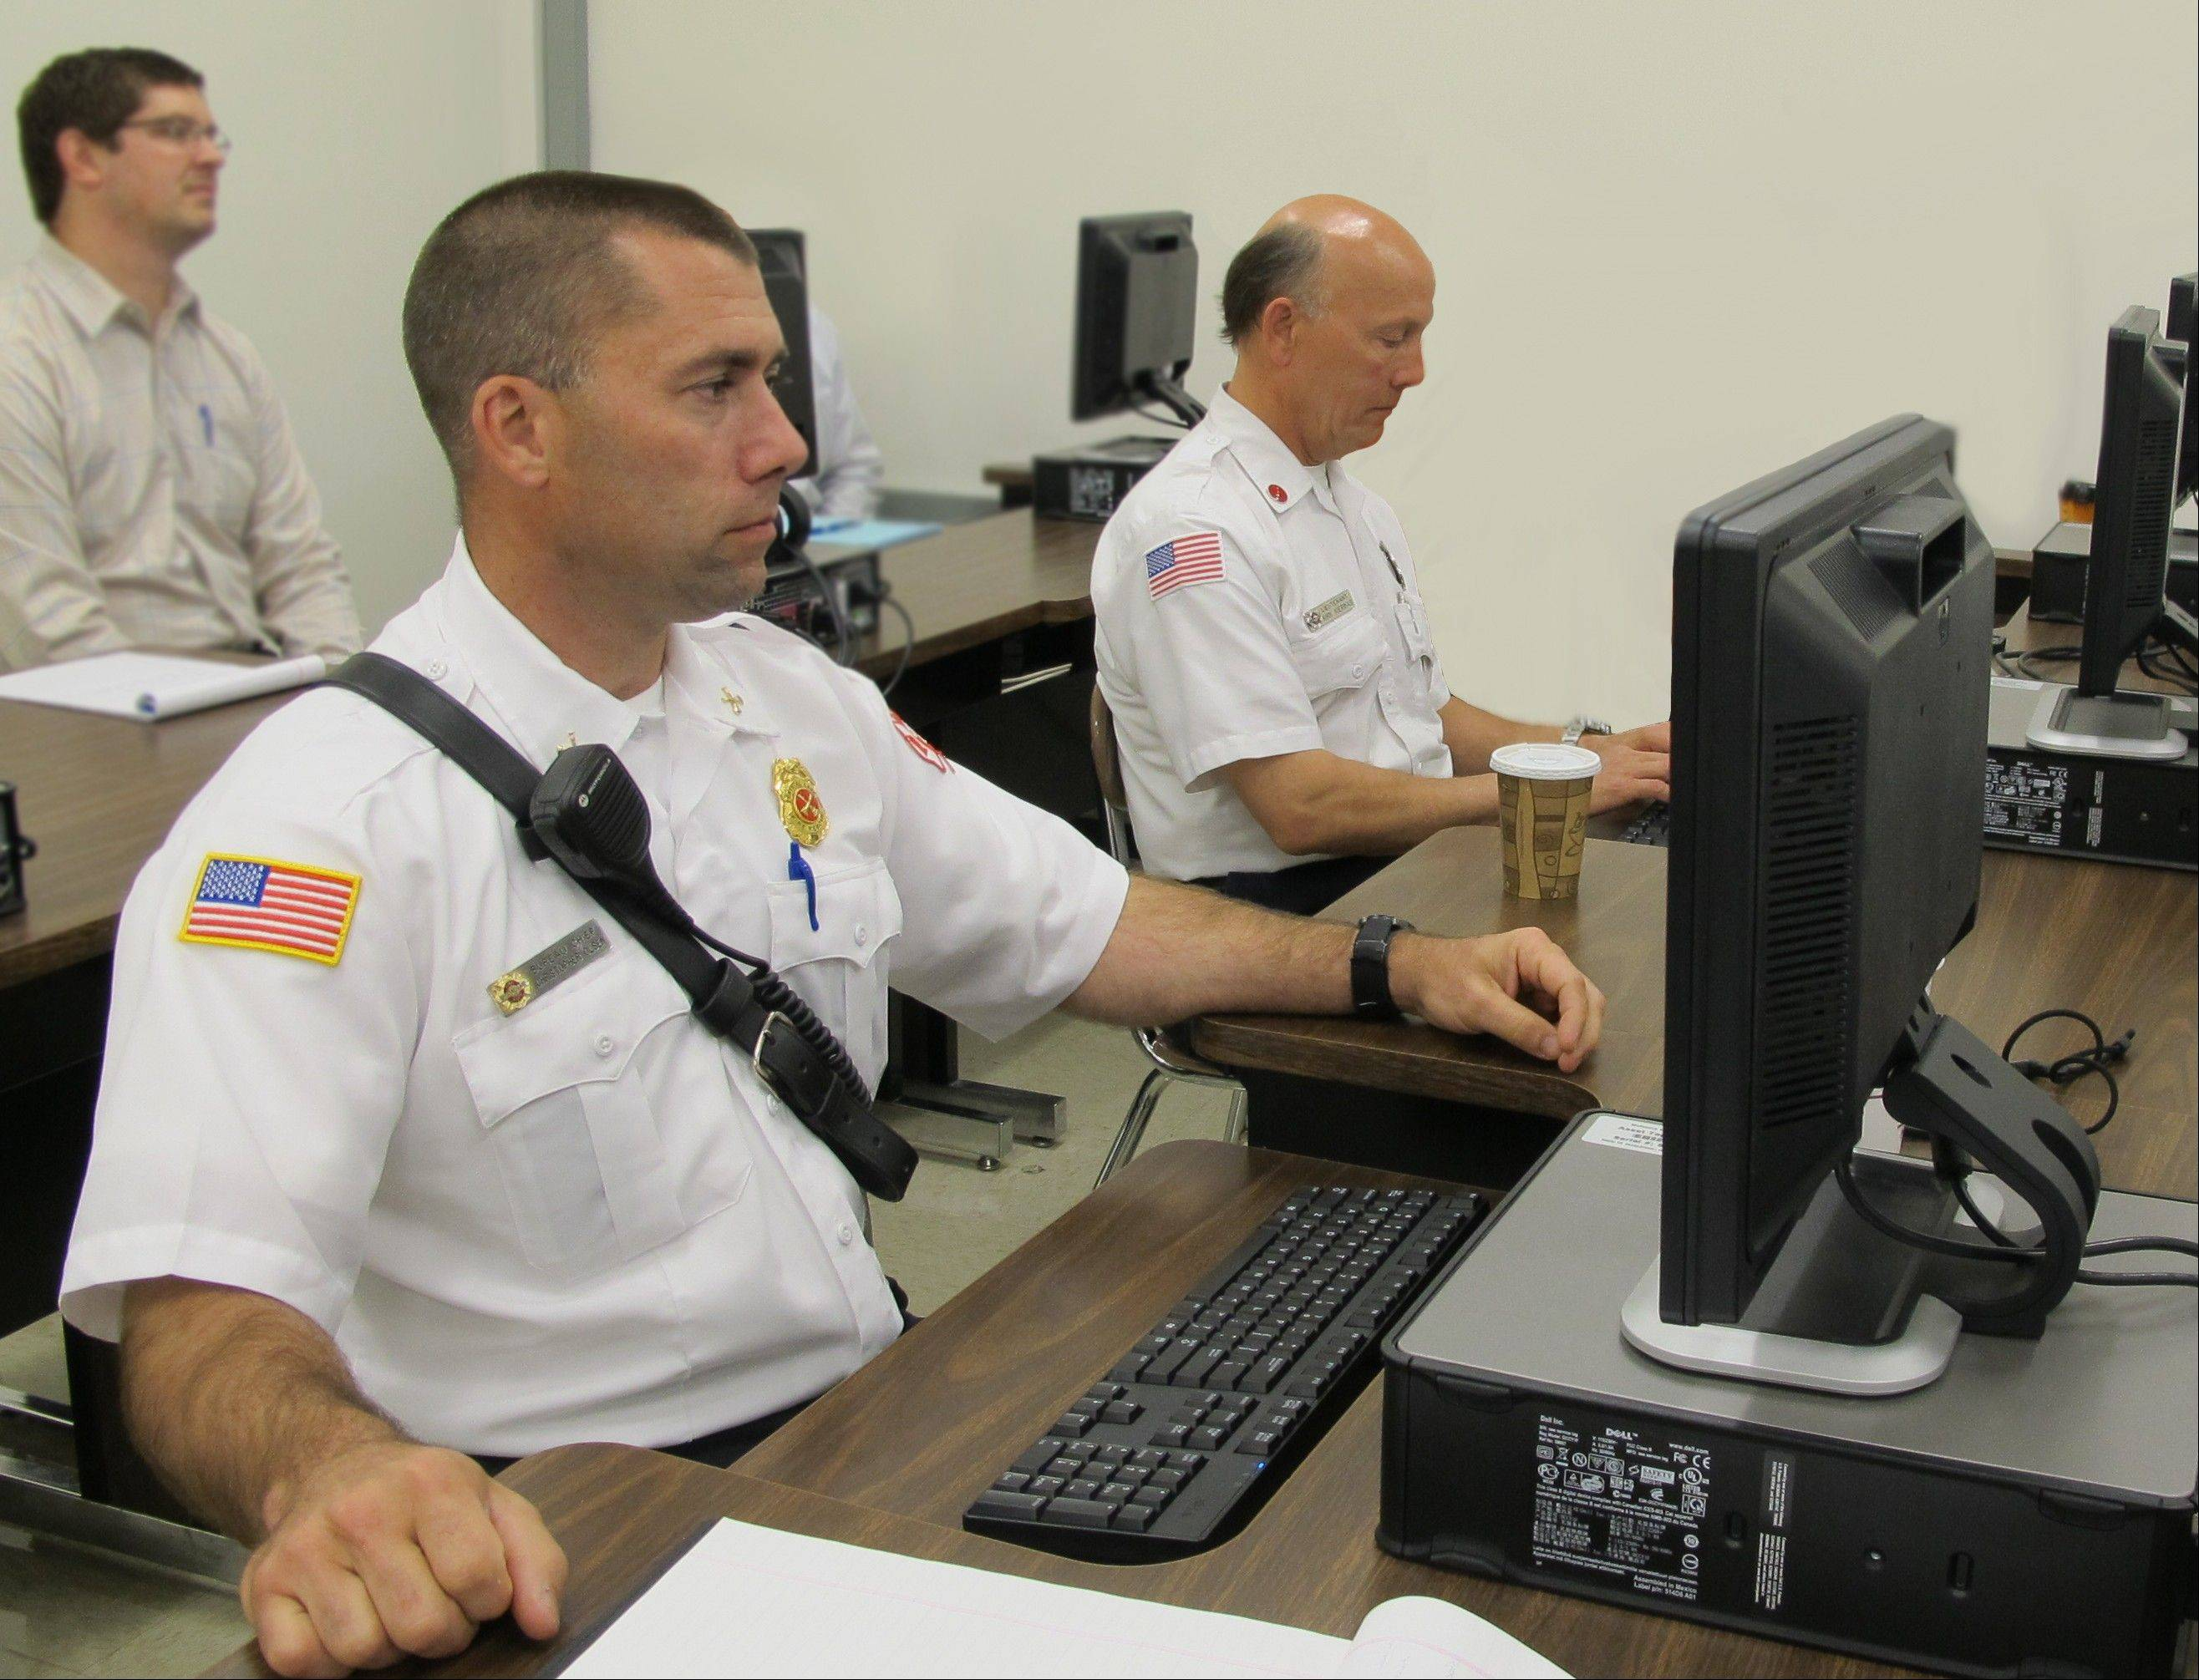 Crystal Lake first responders view Doppler radar on computer screens during a severe weather training session recently at McHenry County College. Representatives from Crystal Lake departments enhanced their skills to interpret radar using weather forecast models. Pictured from left are Crystal Lake Fire Deputy Chief Chris Olsen and Lt. Kirk Kiermas.